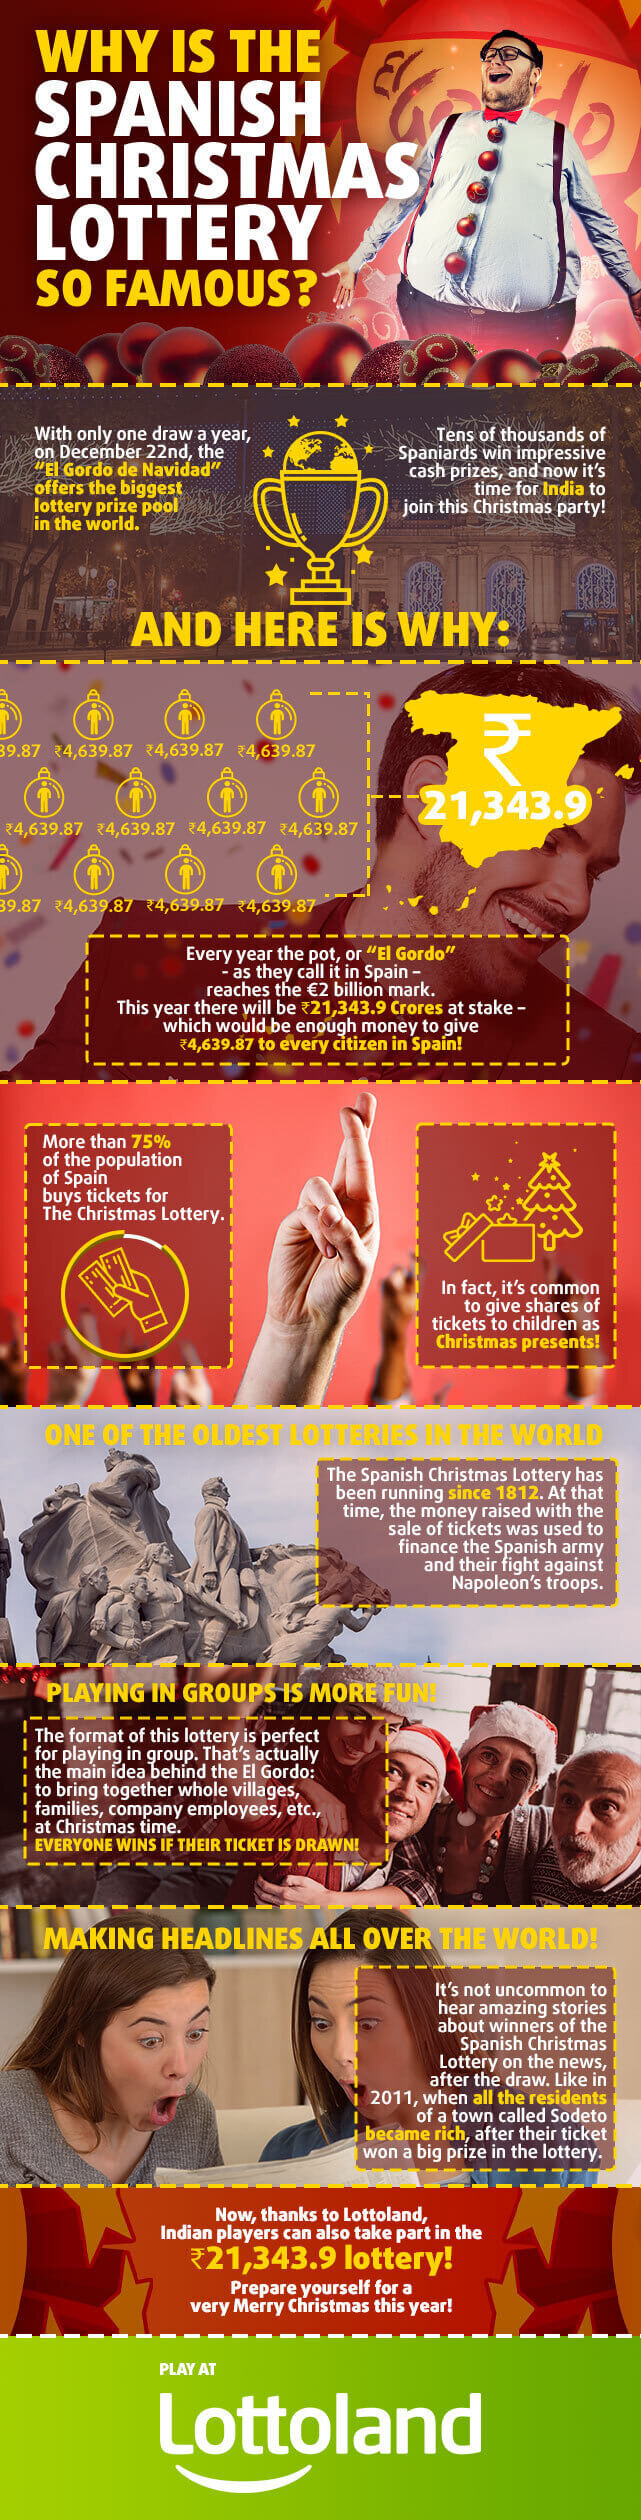 Infographic with interesting facts about the Spanish Christmas Lottery El Gordo